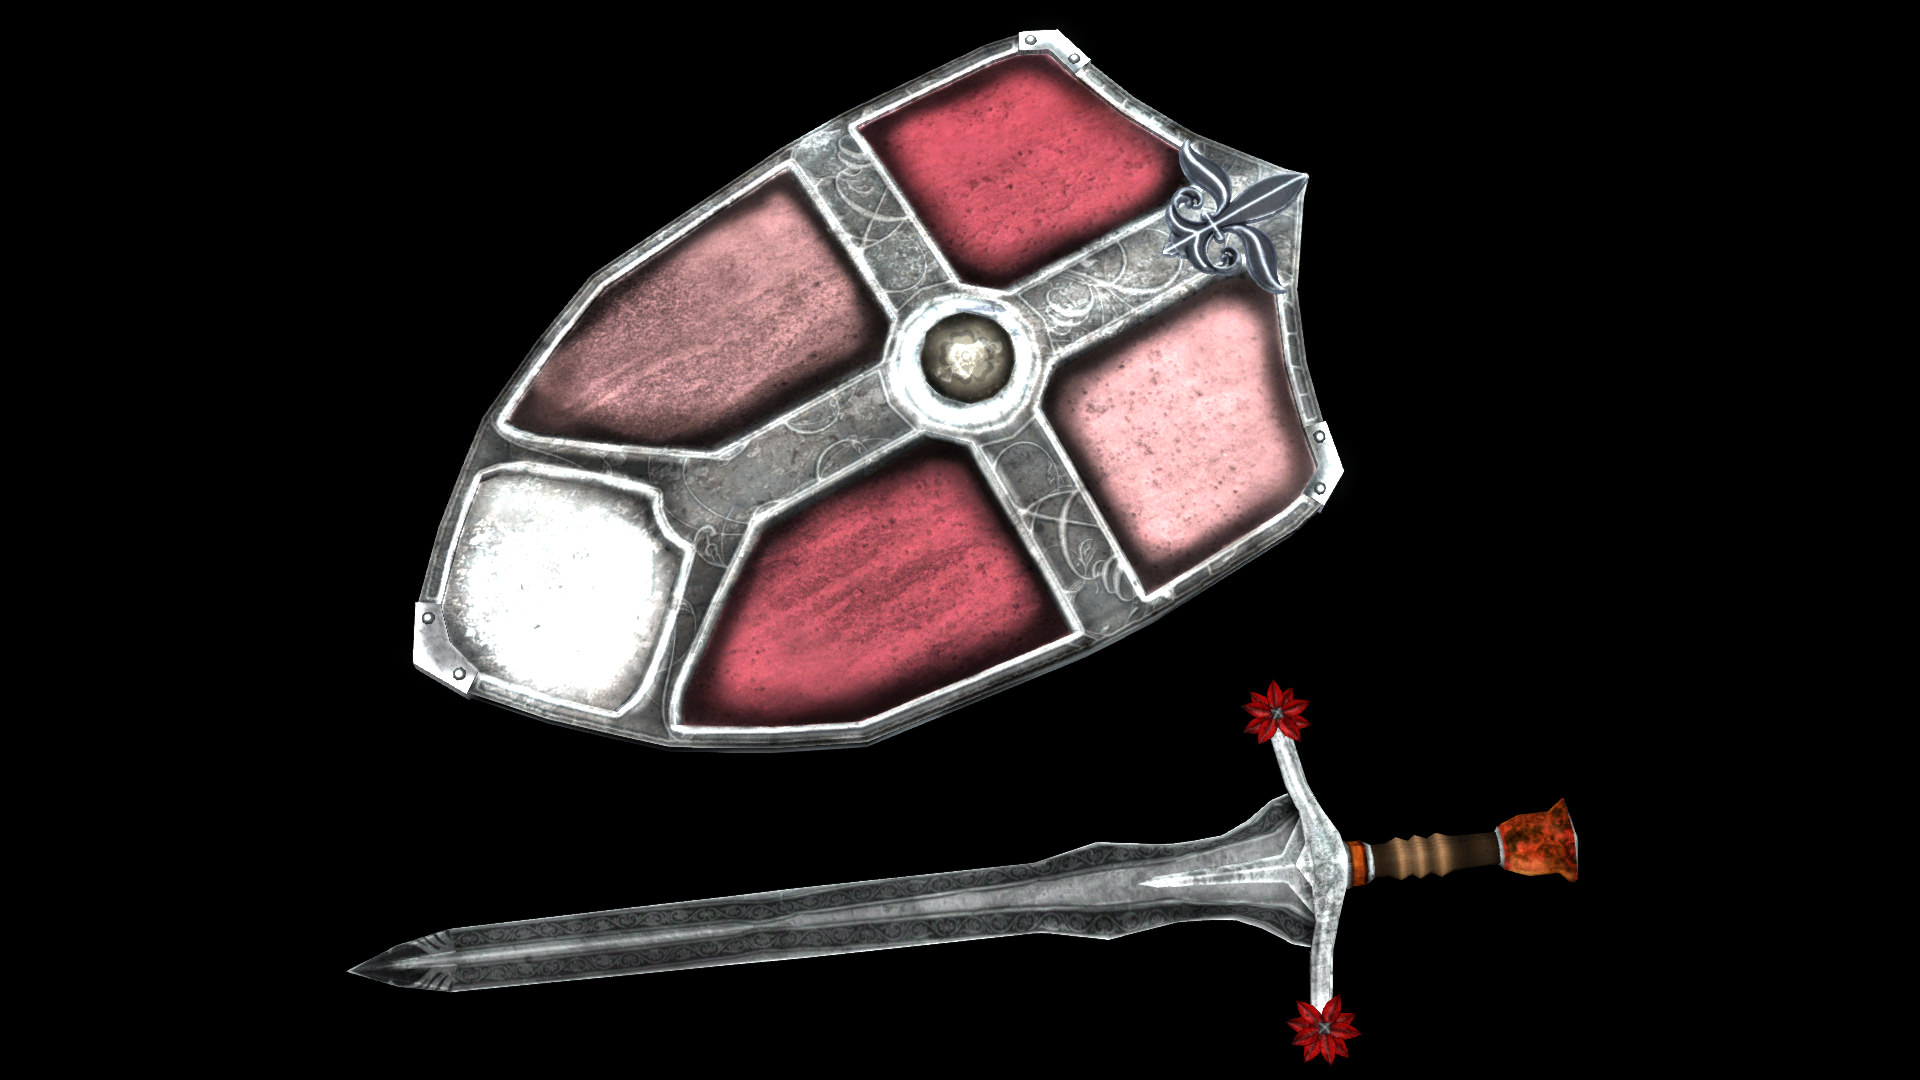 Rose_North_Armor_and_Weapons_UNP_8.jpg